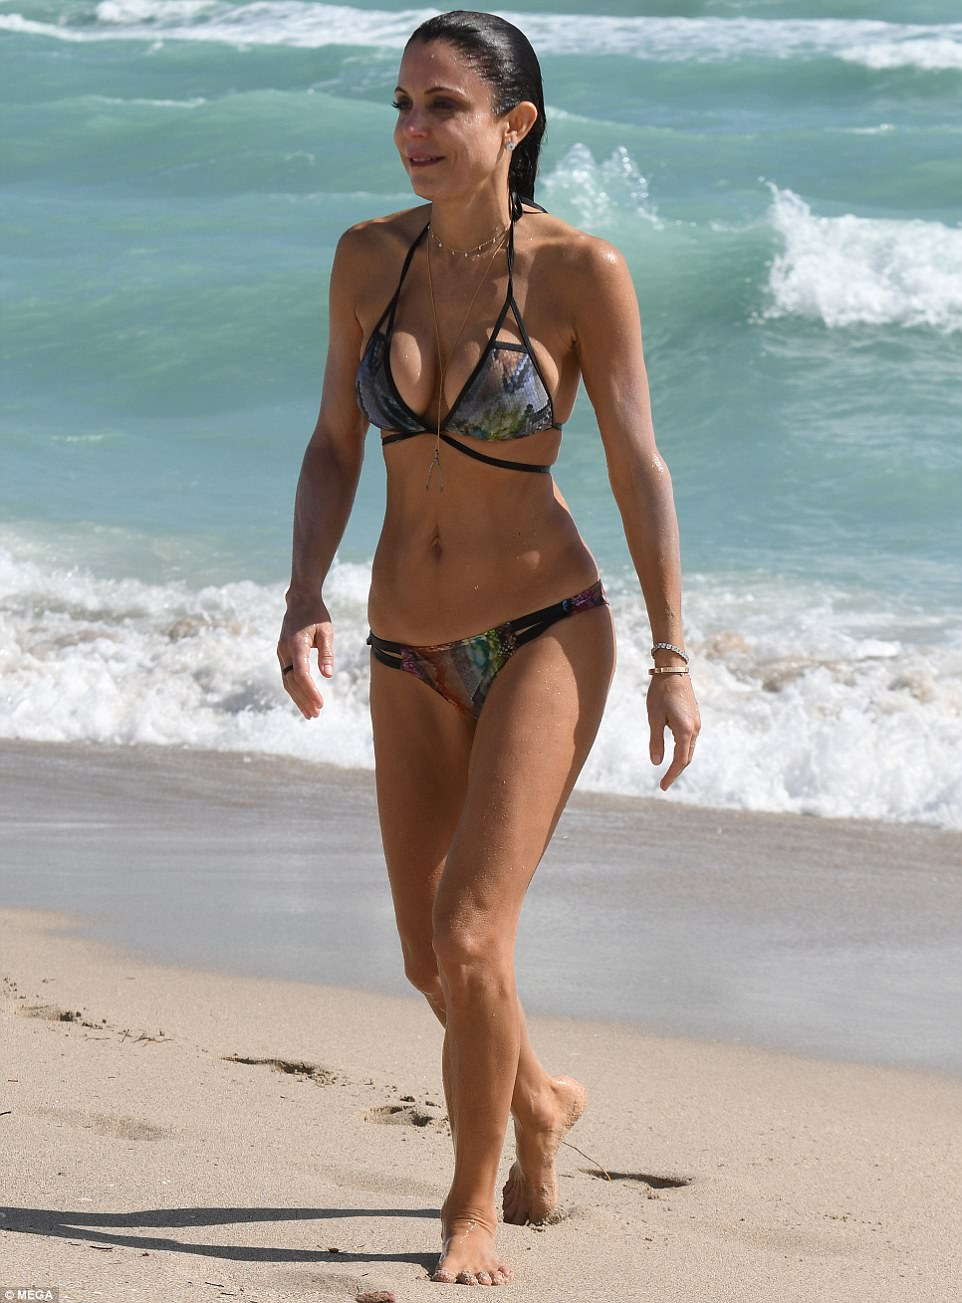 Out of New York:Bethenny Frankel has escaped February in the Northeast and headed down the coast to Miami, where she is enjoying a sun-drenched holiday